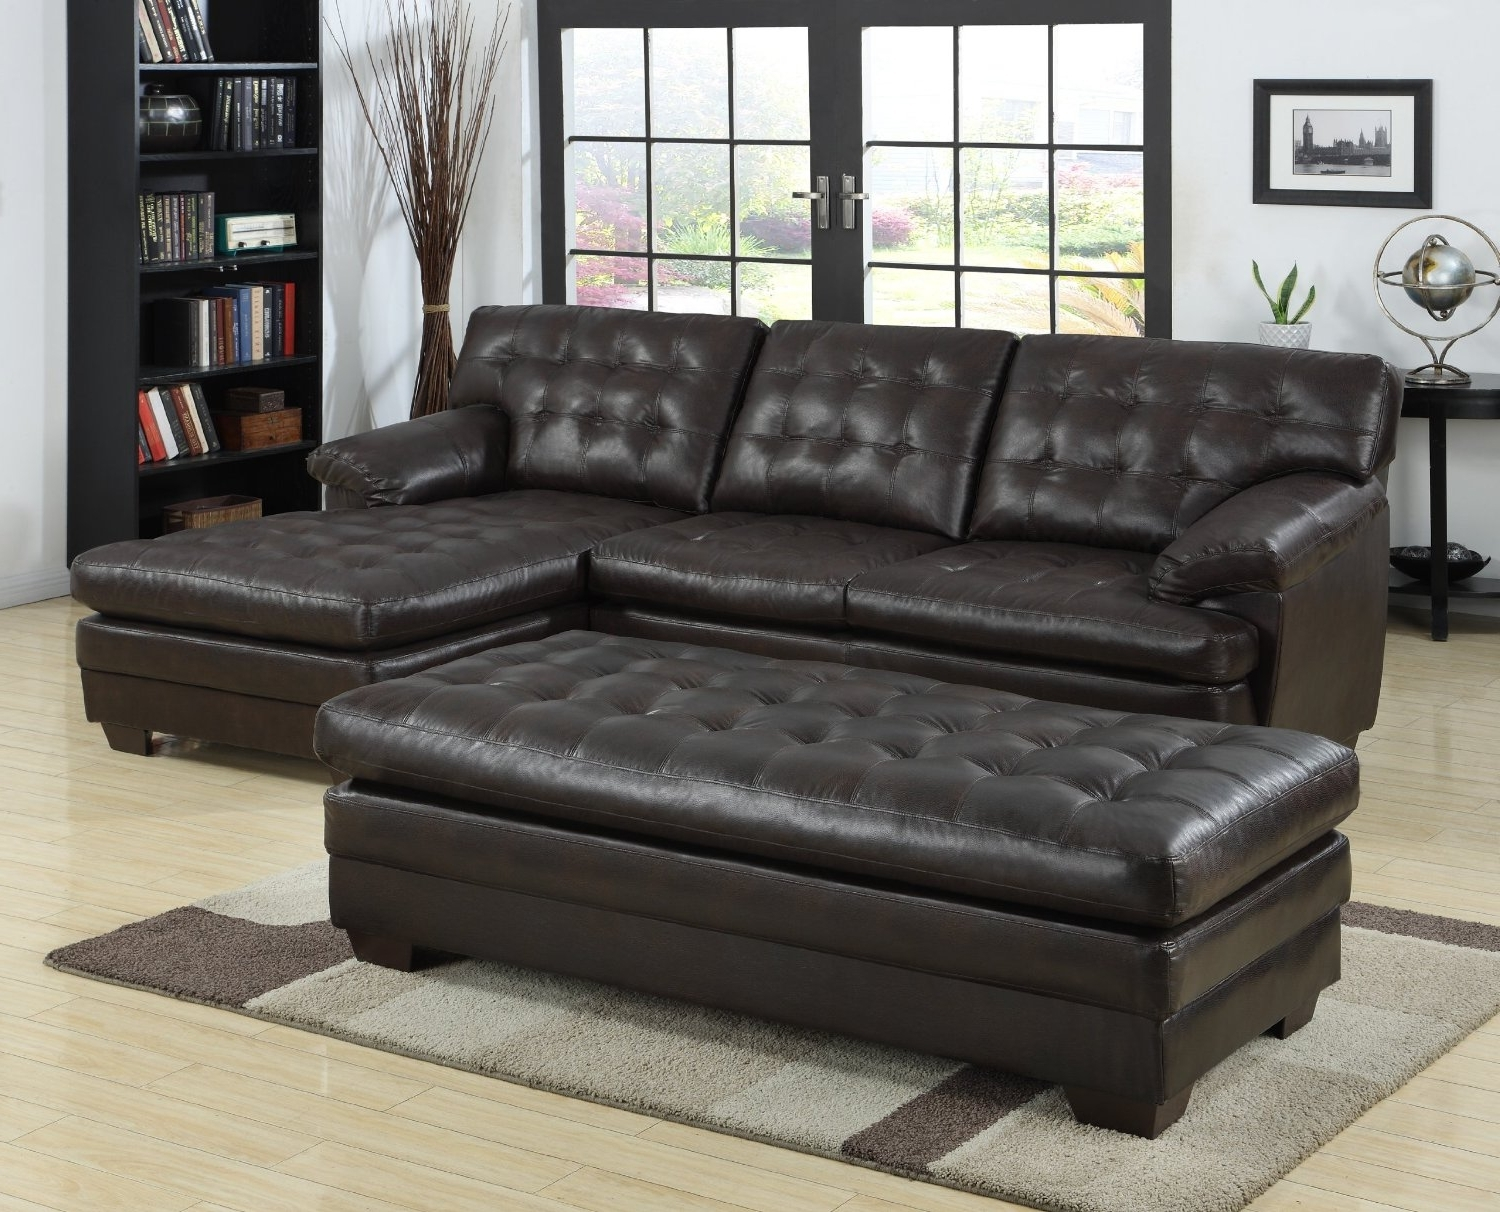 Favorite Black Tufted Leather Sectional Sofa With Chaise And Bench Seat Within Tufted Sofas With Chaise (View 8 of 15)